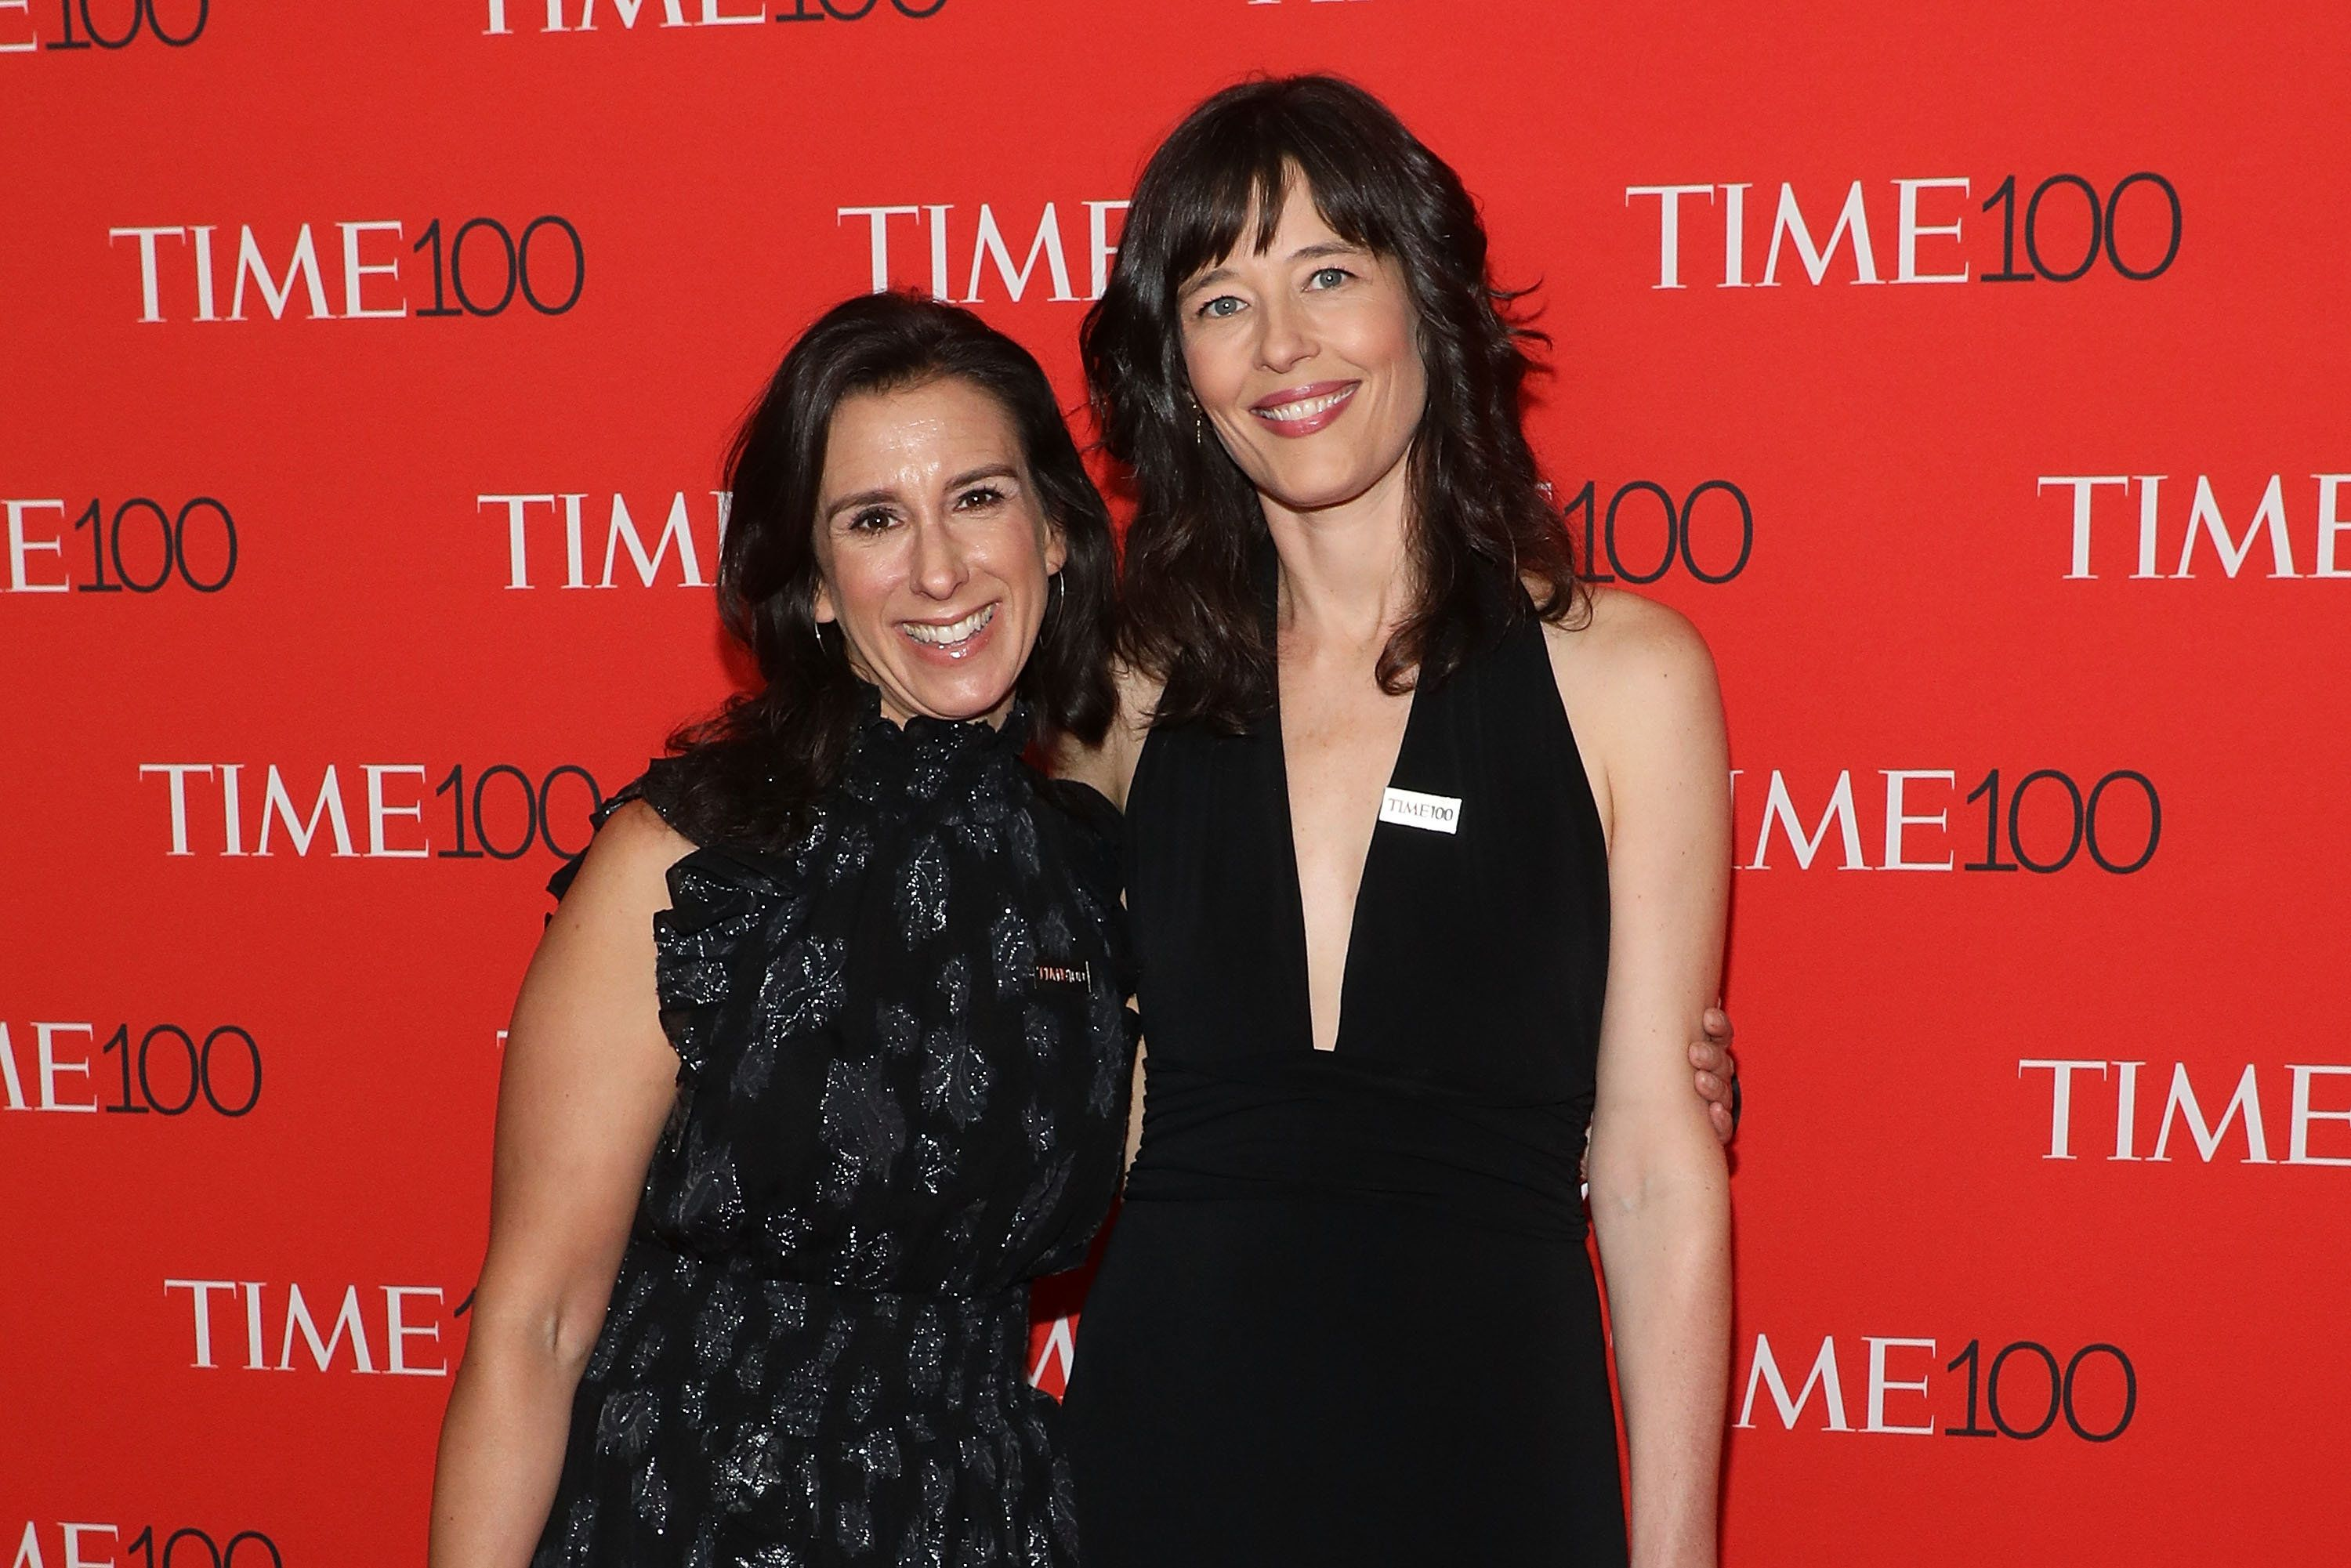 NEW YORK, NY - APRIL 24:  Jodi Kantor and Megan Twohey attend the 2018 Time 100 Gala at Frederick P. Rose Hall, Jazz at Lincoln Center on April 24, 2018 in New York City.  (Photo by Taylor Hill/FilmMagic)